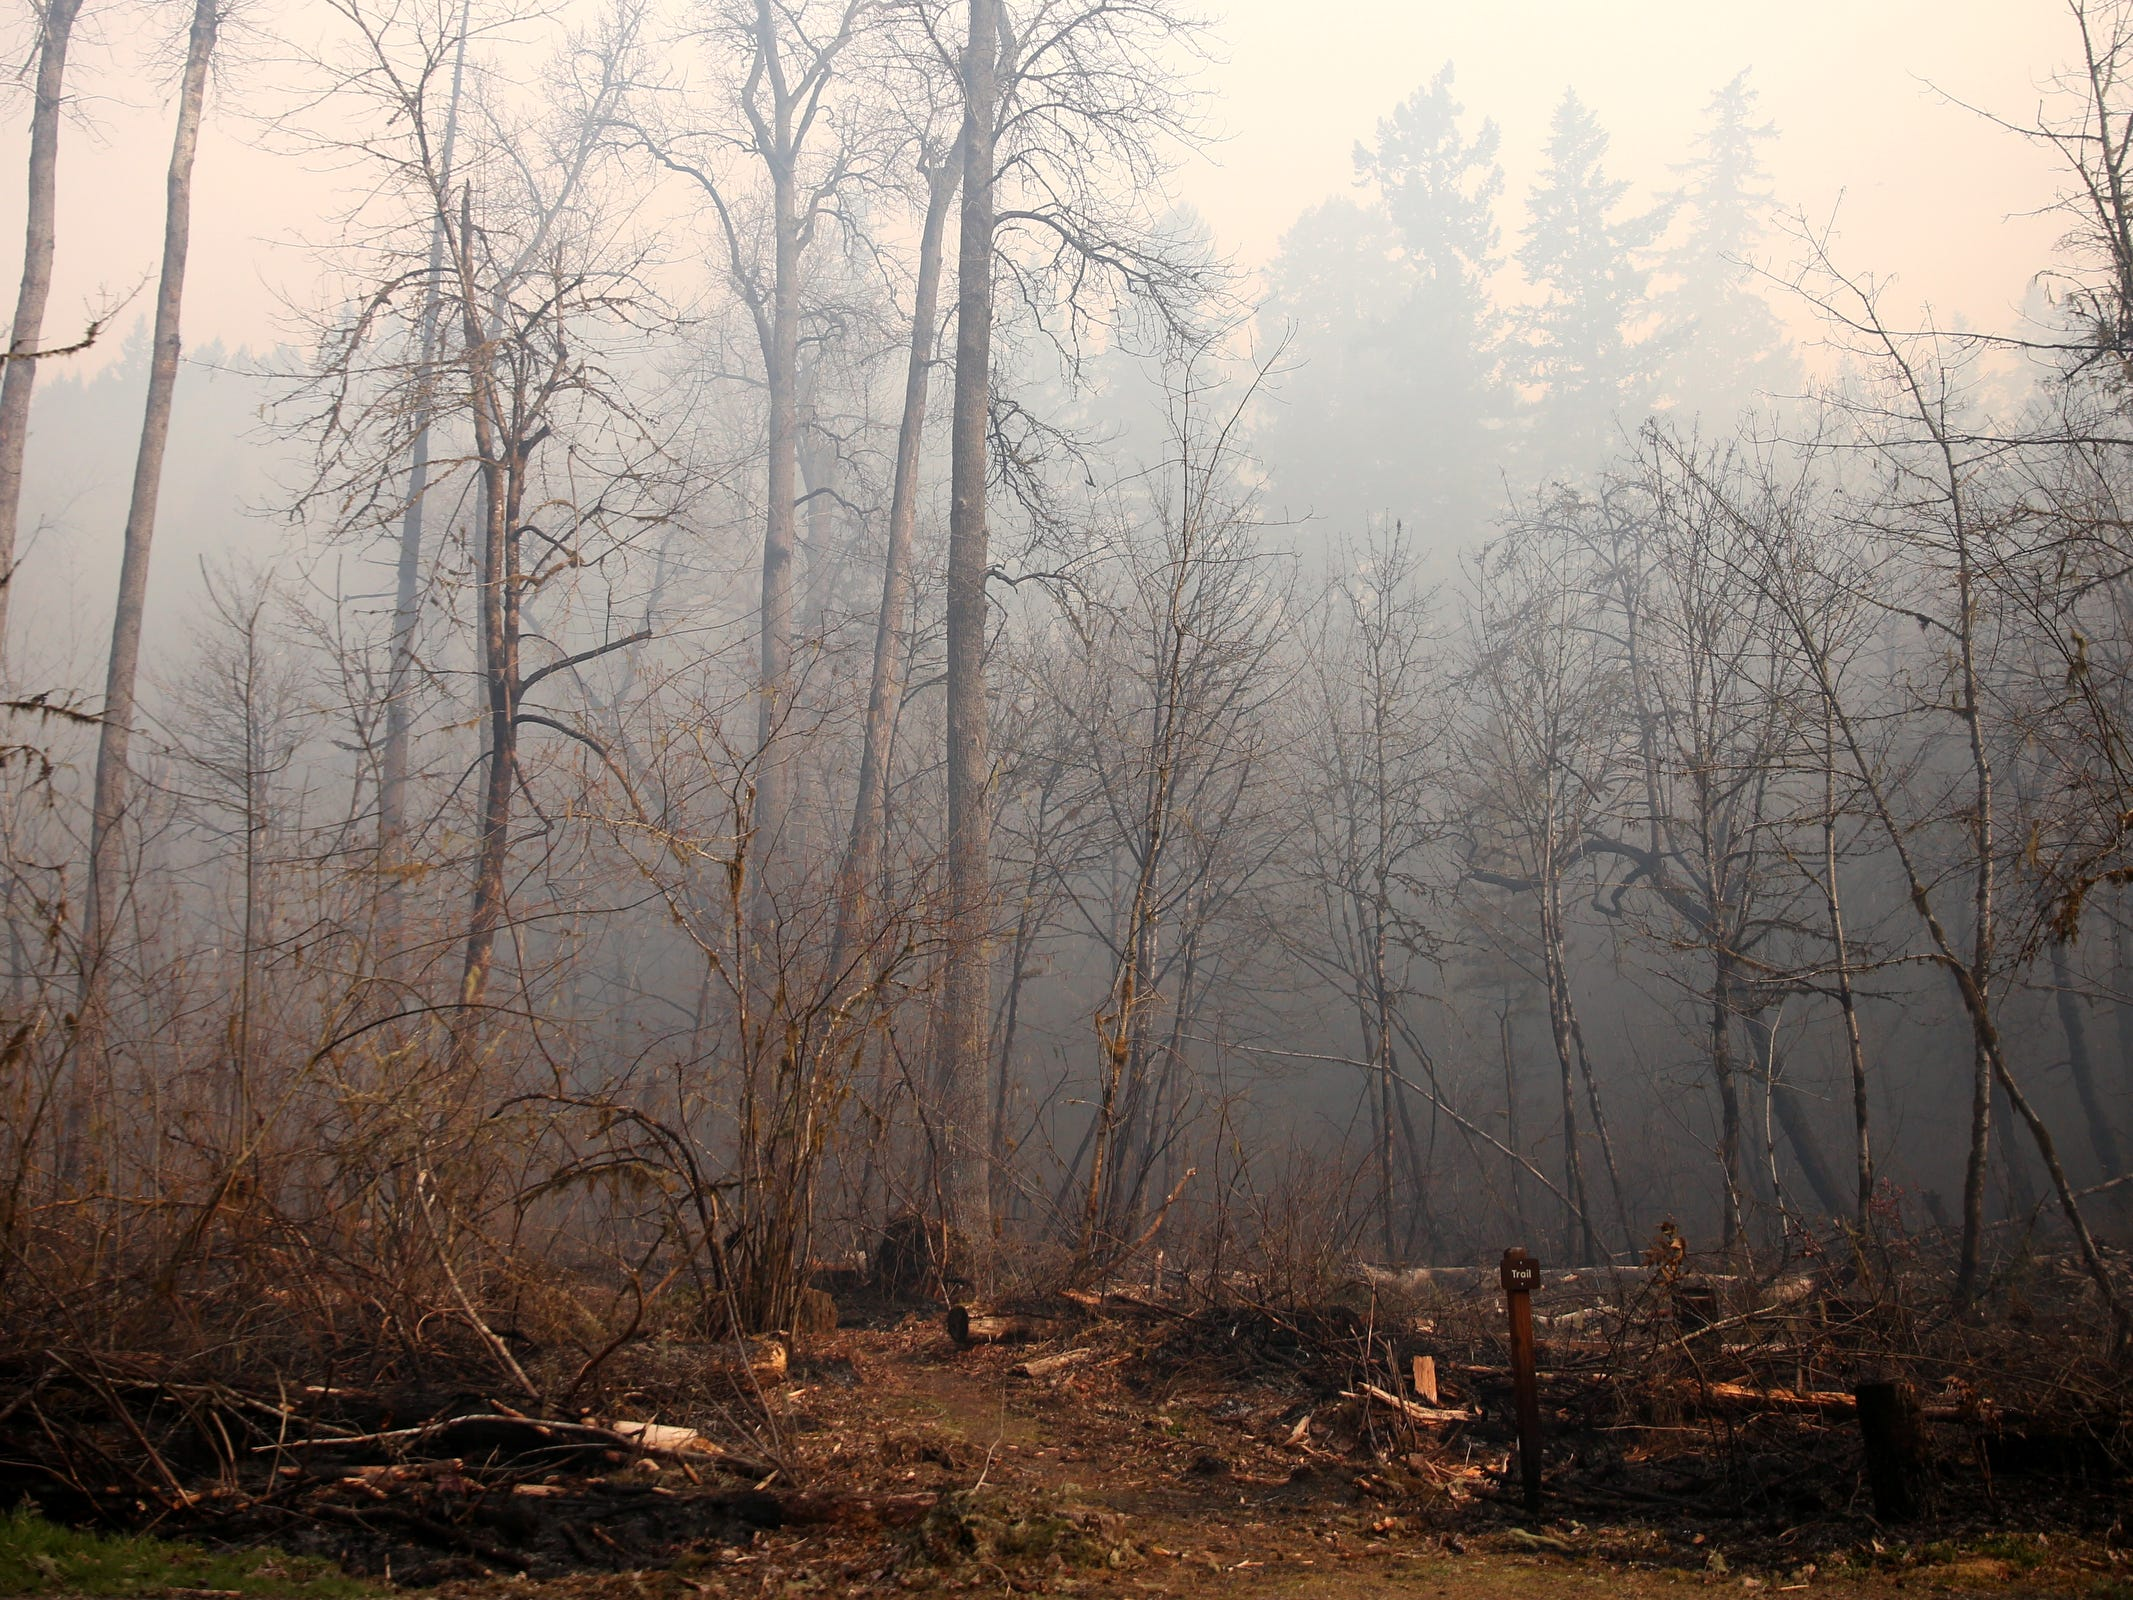 A wildfire in the North Santiam State Recreation Area near Lyons on March 20 burned 189 acres and forced the closure of the park.